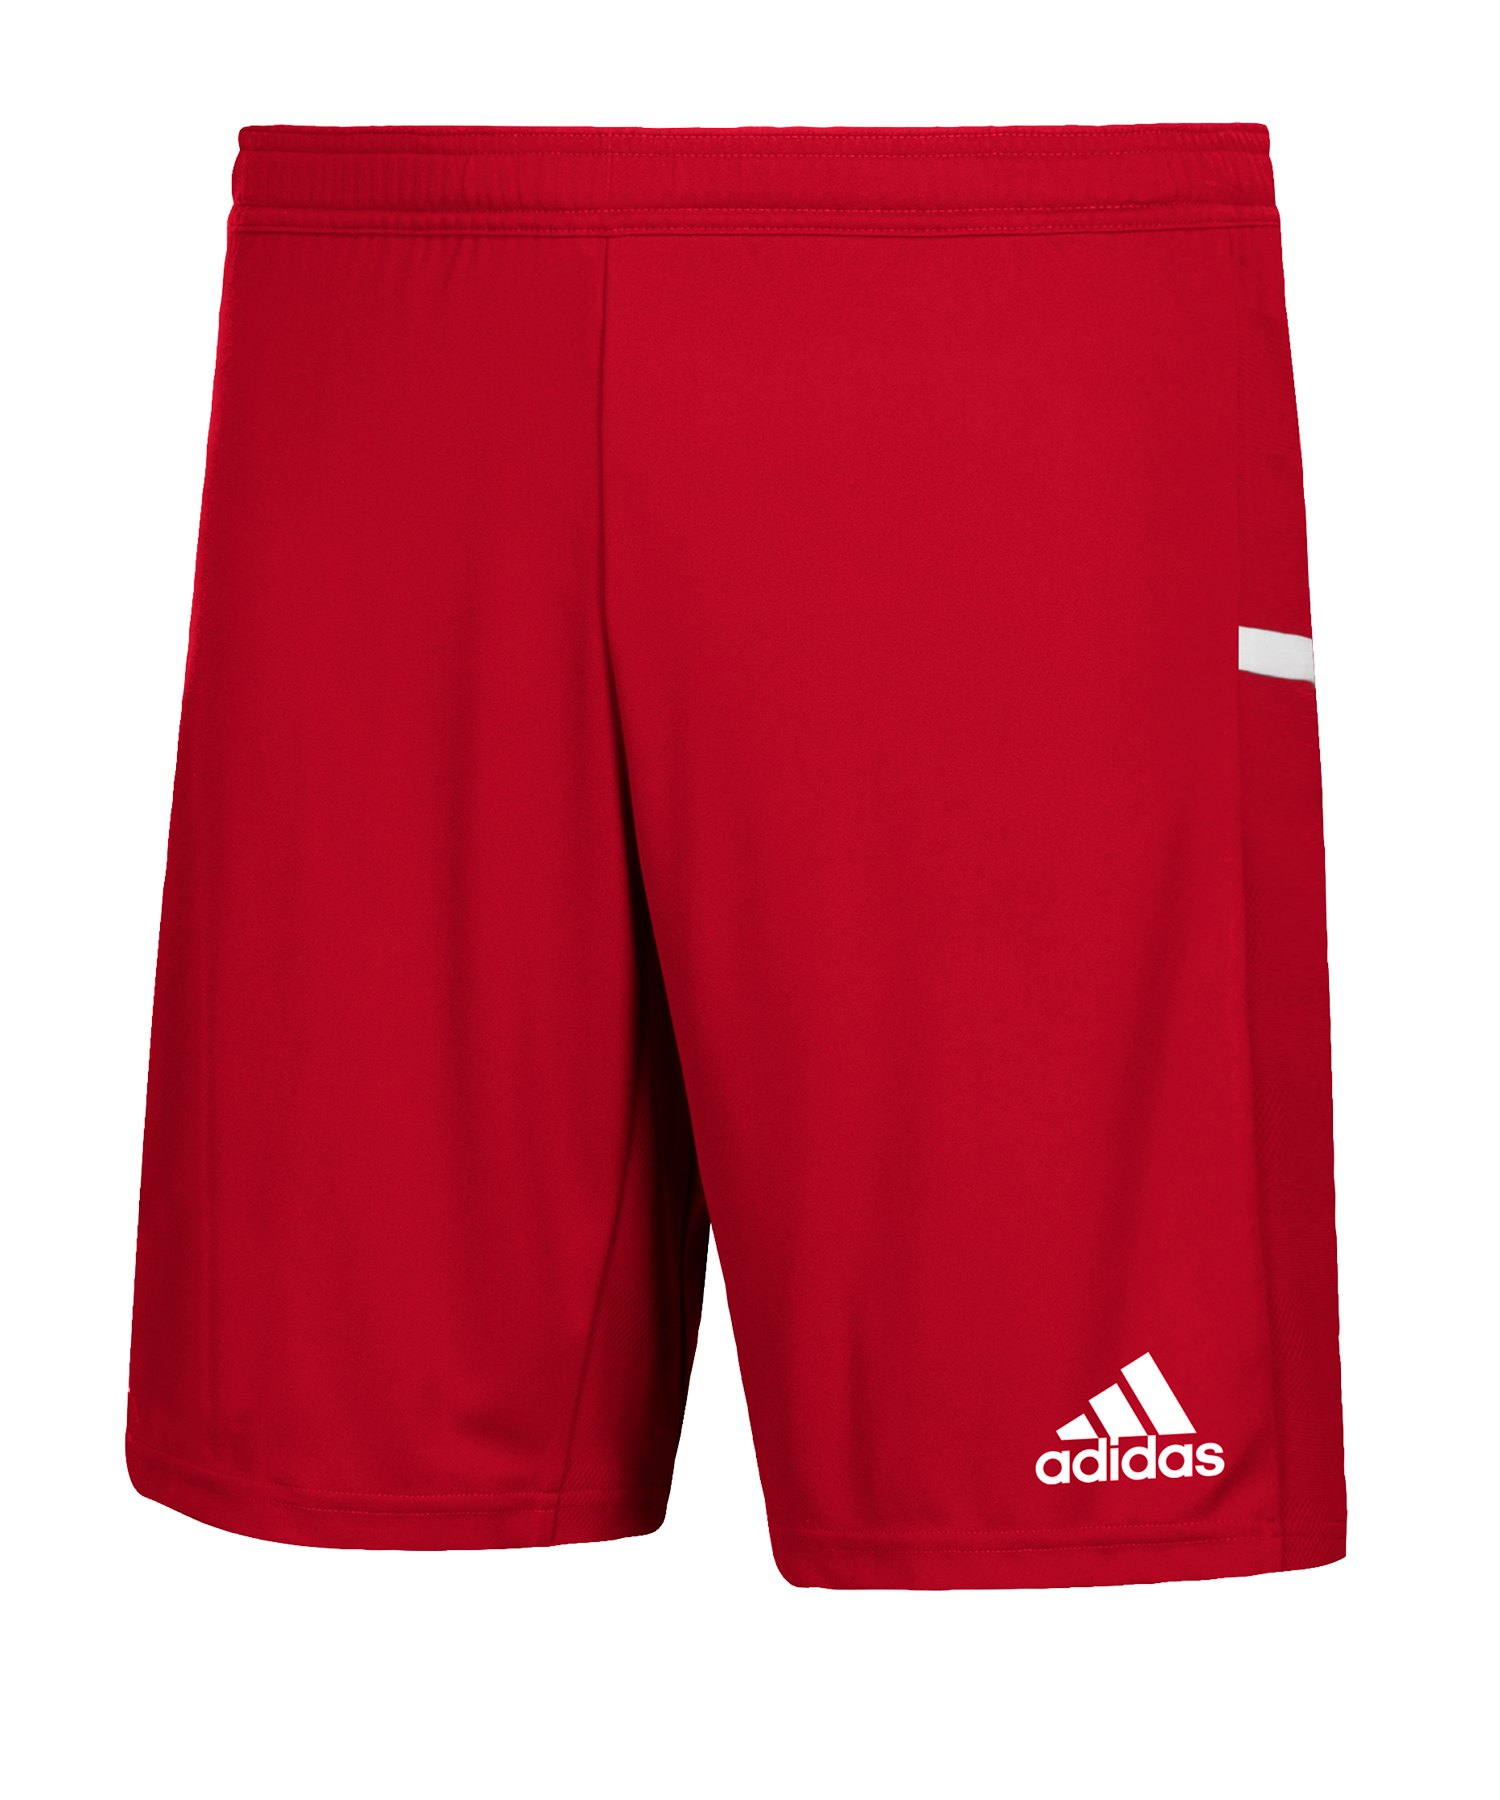 adidas Team 19 Knitted Short Rot Weiss - rot